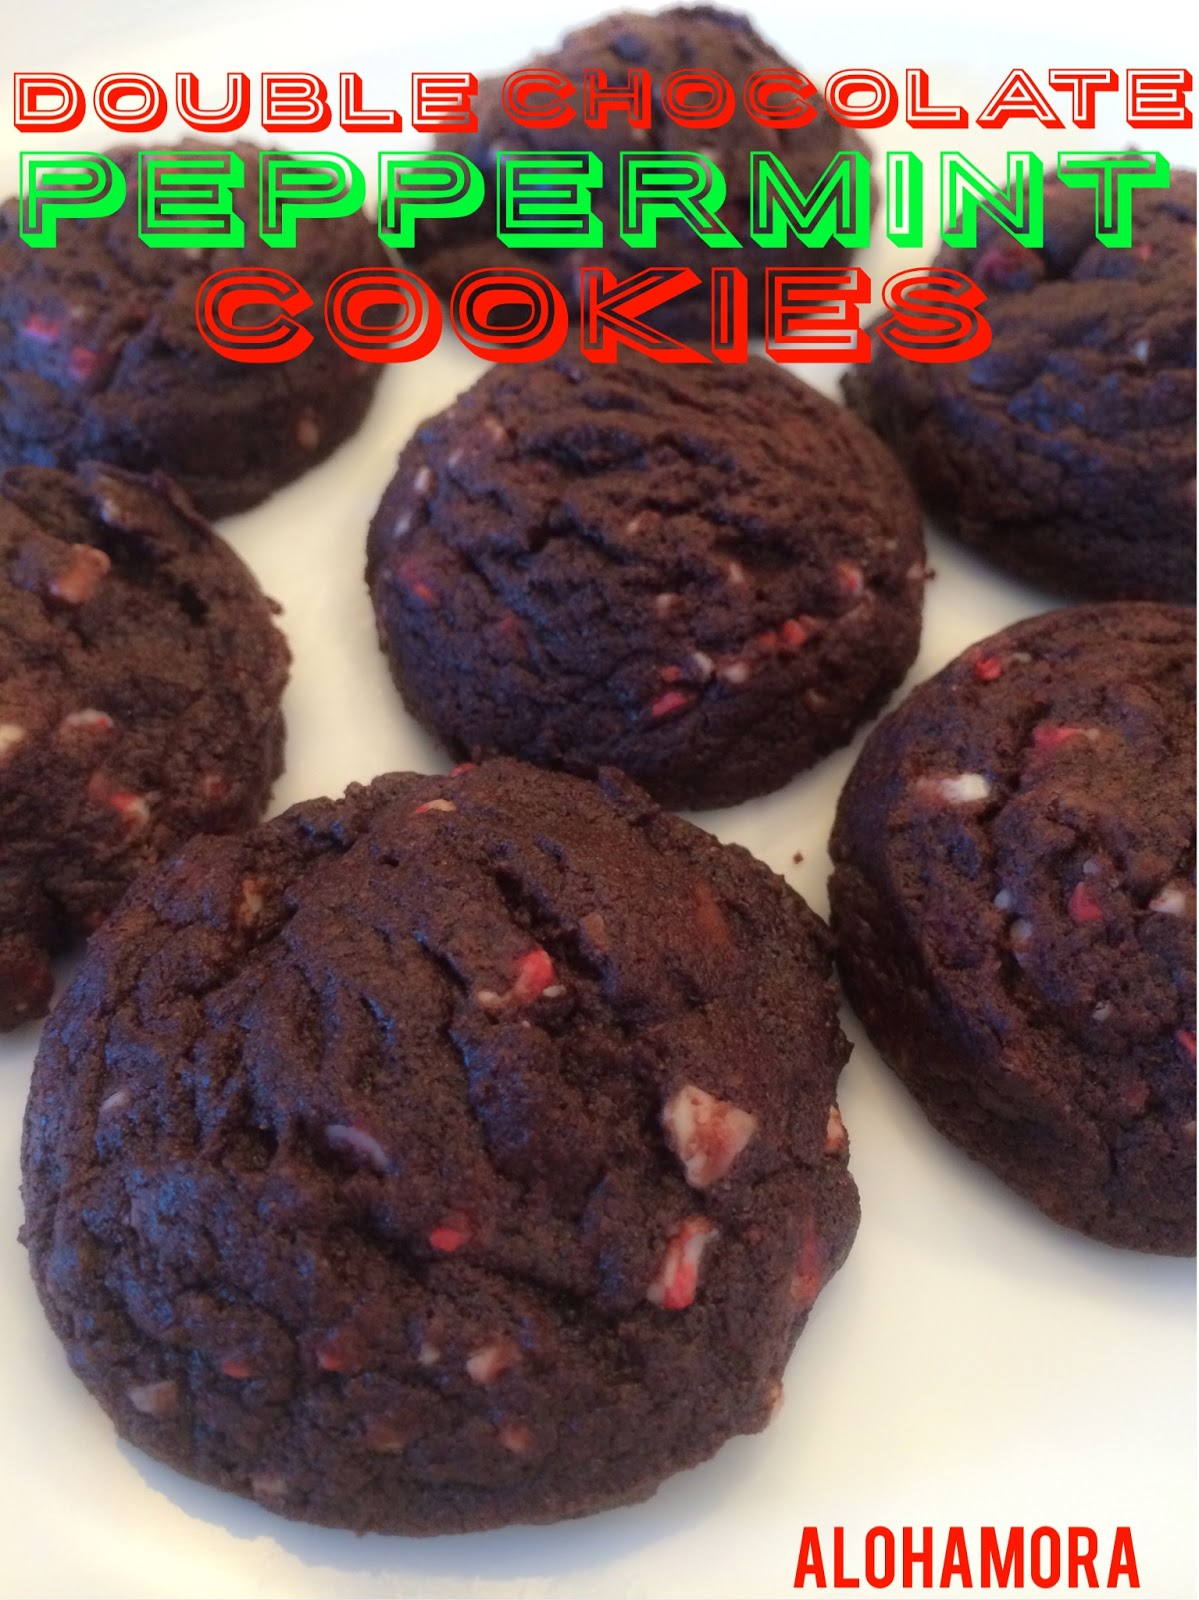 Double Chocolate Andes Peppermint Cookies.  Chocolate goodness and  the perfect amount of peppermint using the most delicious Andes Peppermint bits (the Andes in the red bag).  These cookies scream Christmas/Holidays and even my non-chocolate husband loves them.  Alohamora Open a Book http://alohamoraopenabook.blogspot.com/